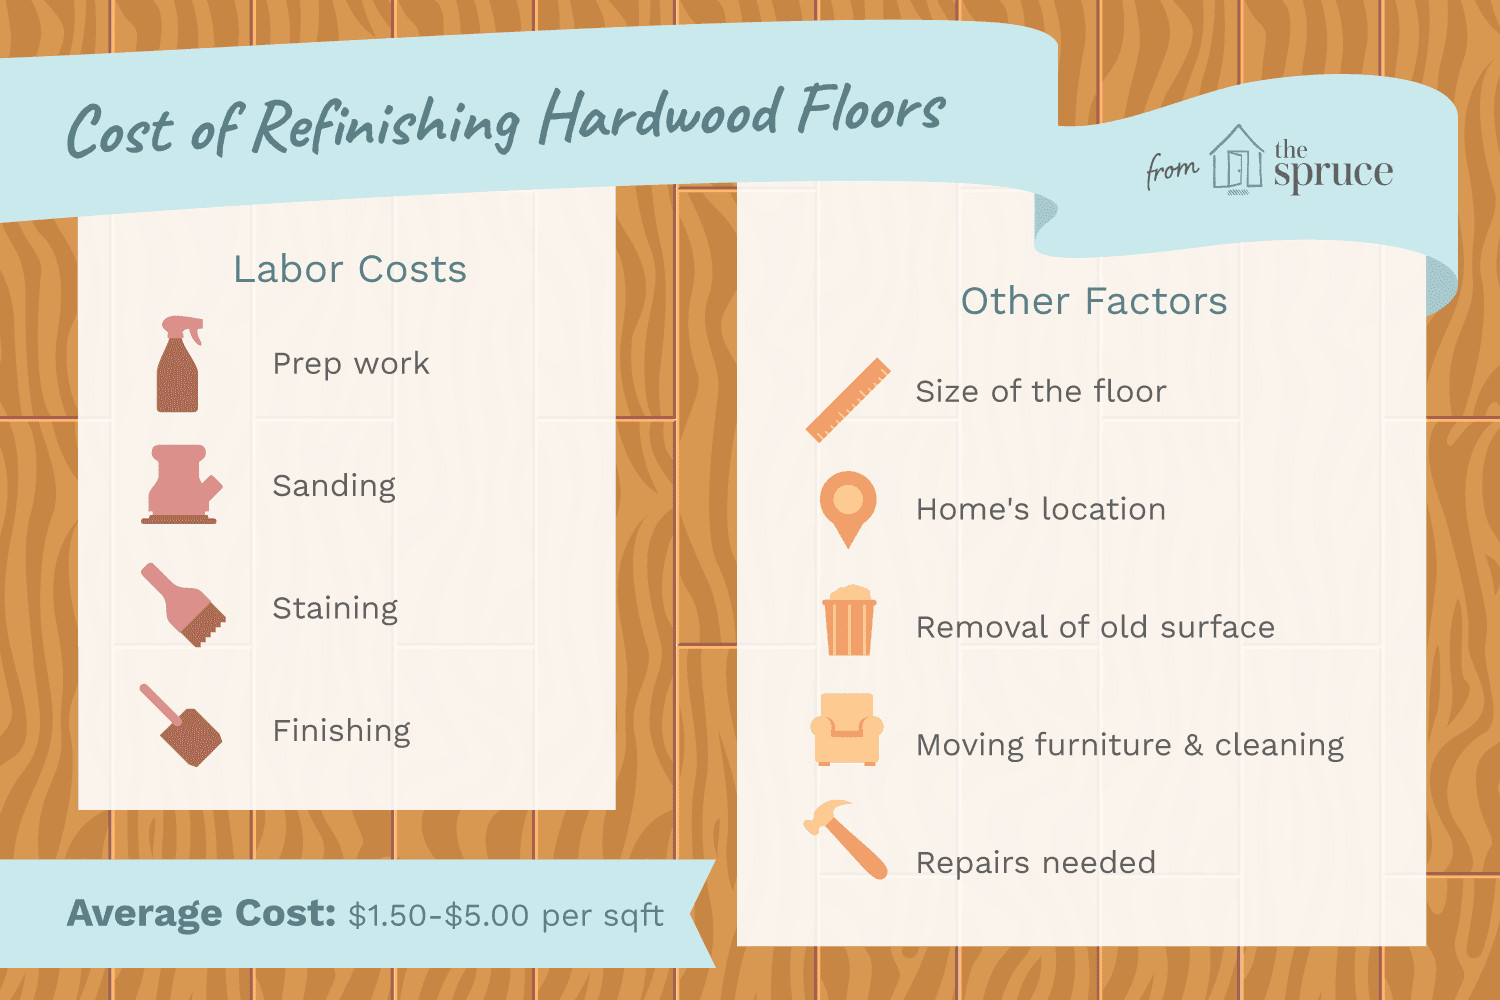 Average Cost Of Sanding Hardwood Floors Of the Cost to Refinish Hardwood Floors Intended for Cost to Refinish Hardwood Floors 1314853 Final 5bb6259346e0fb0026825ce2